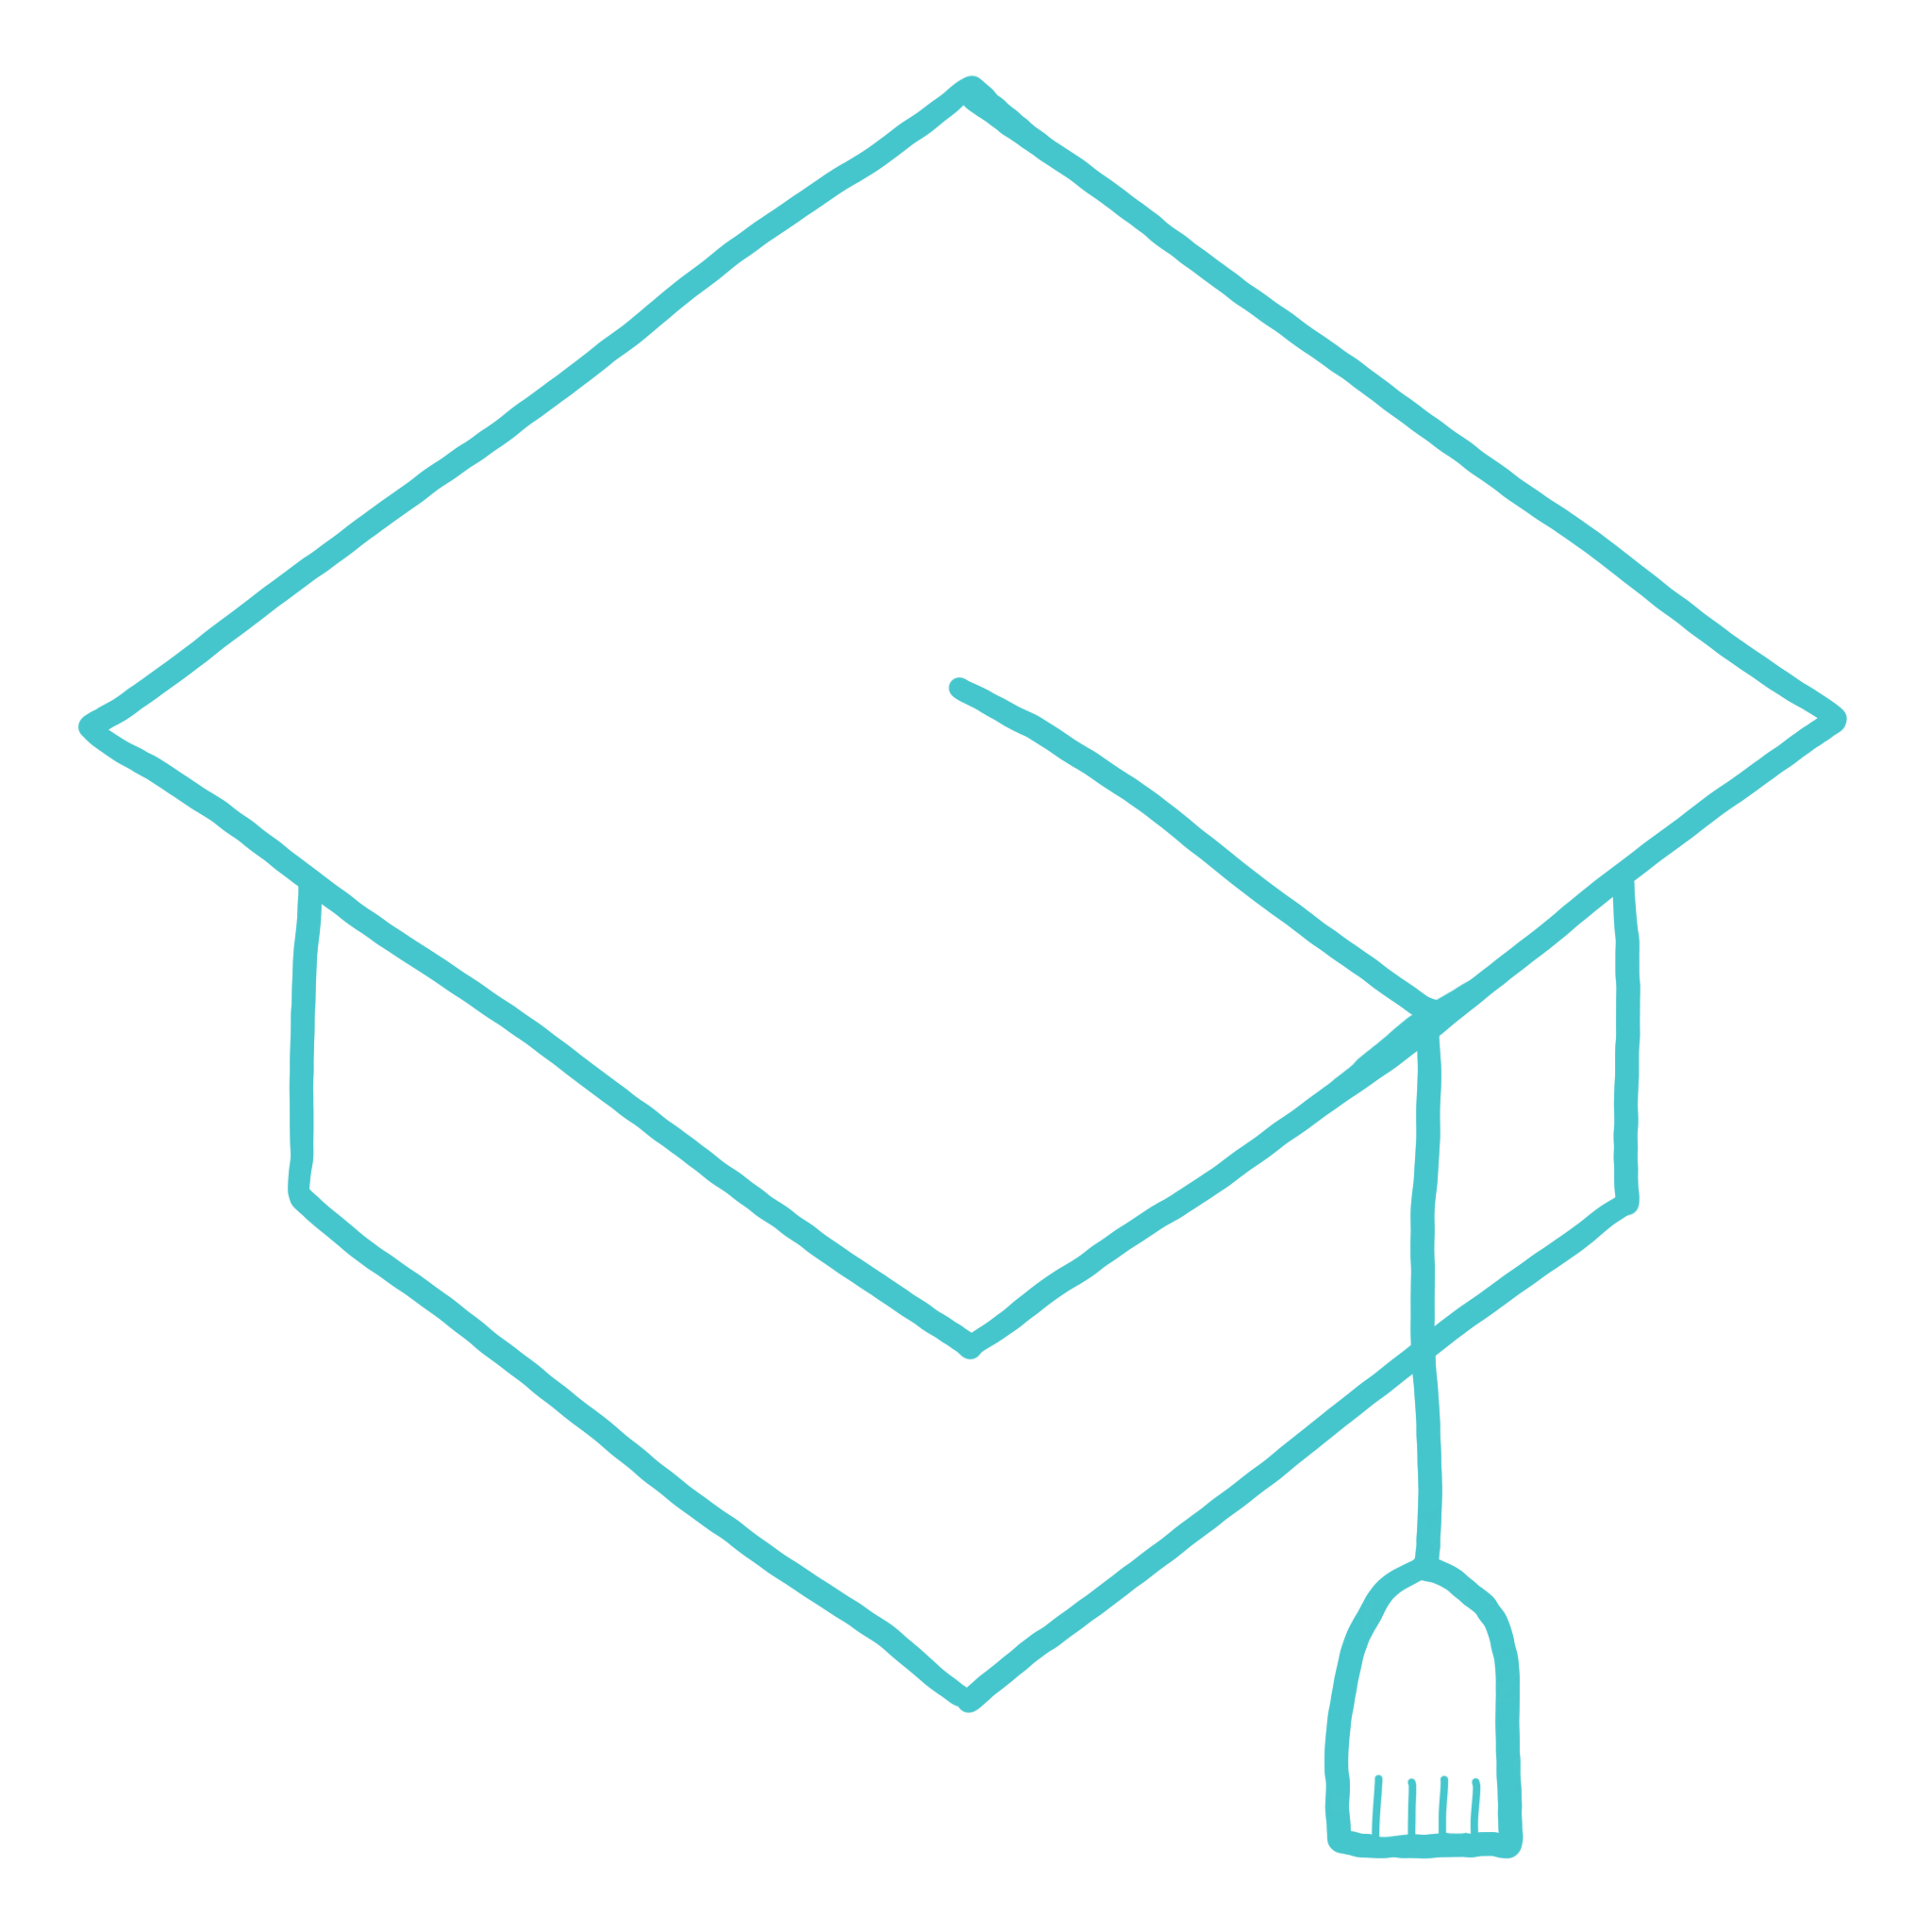 Magic Words Therapy - Hand-drawn Mortar Board Icon.png